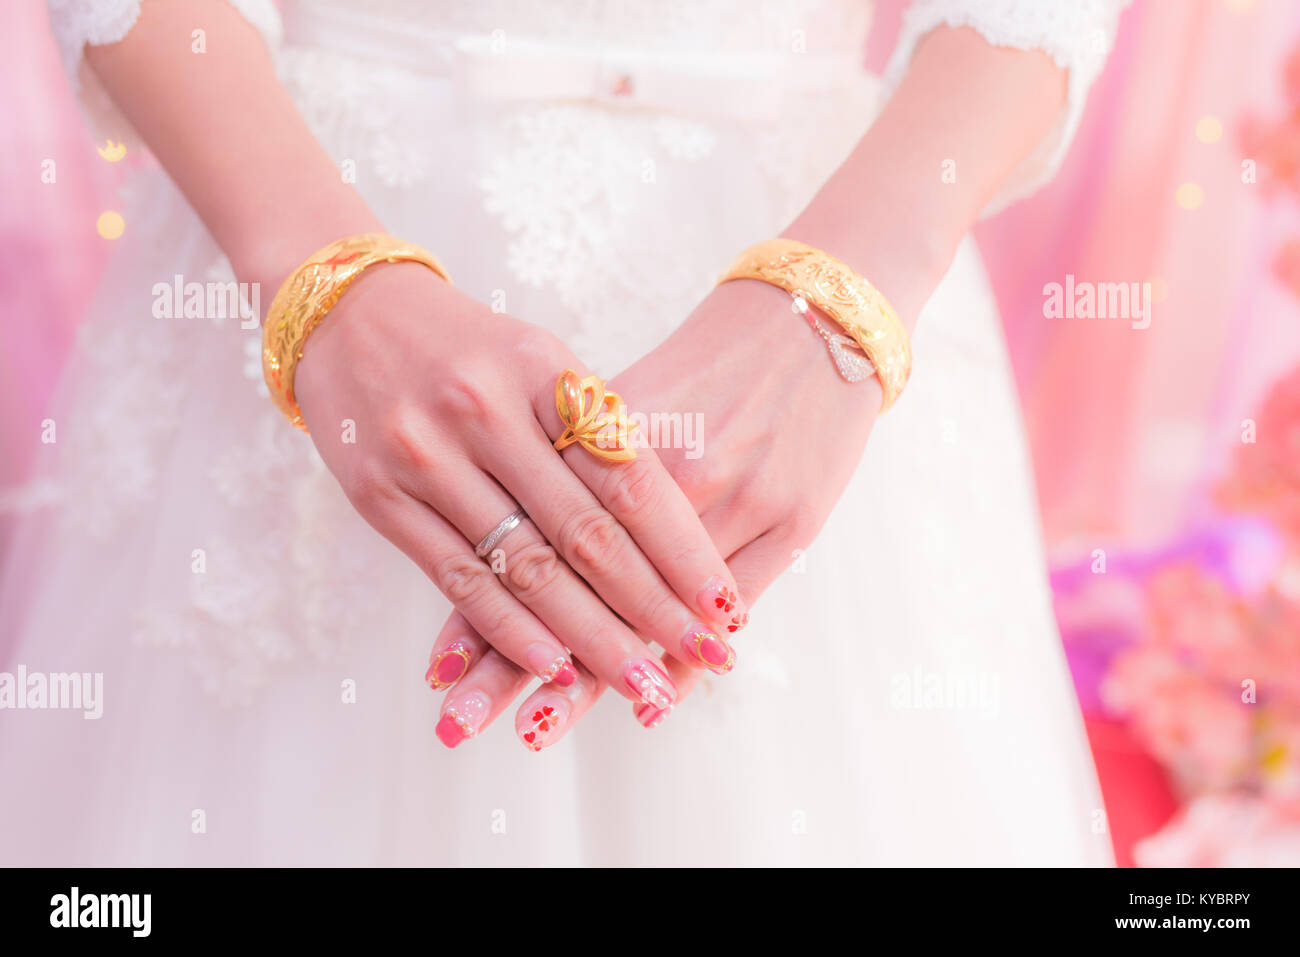 Hand Showing Wedding Engagement Rings Stock Photos & Hand Showing ...